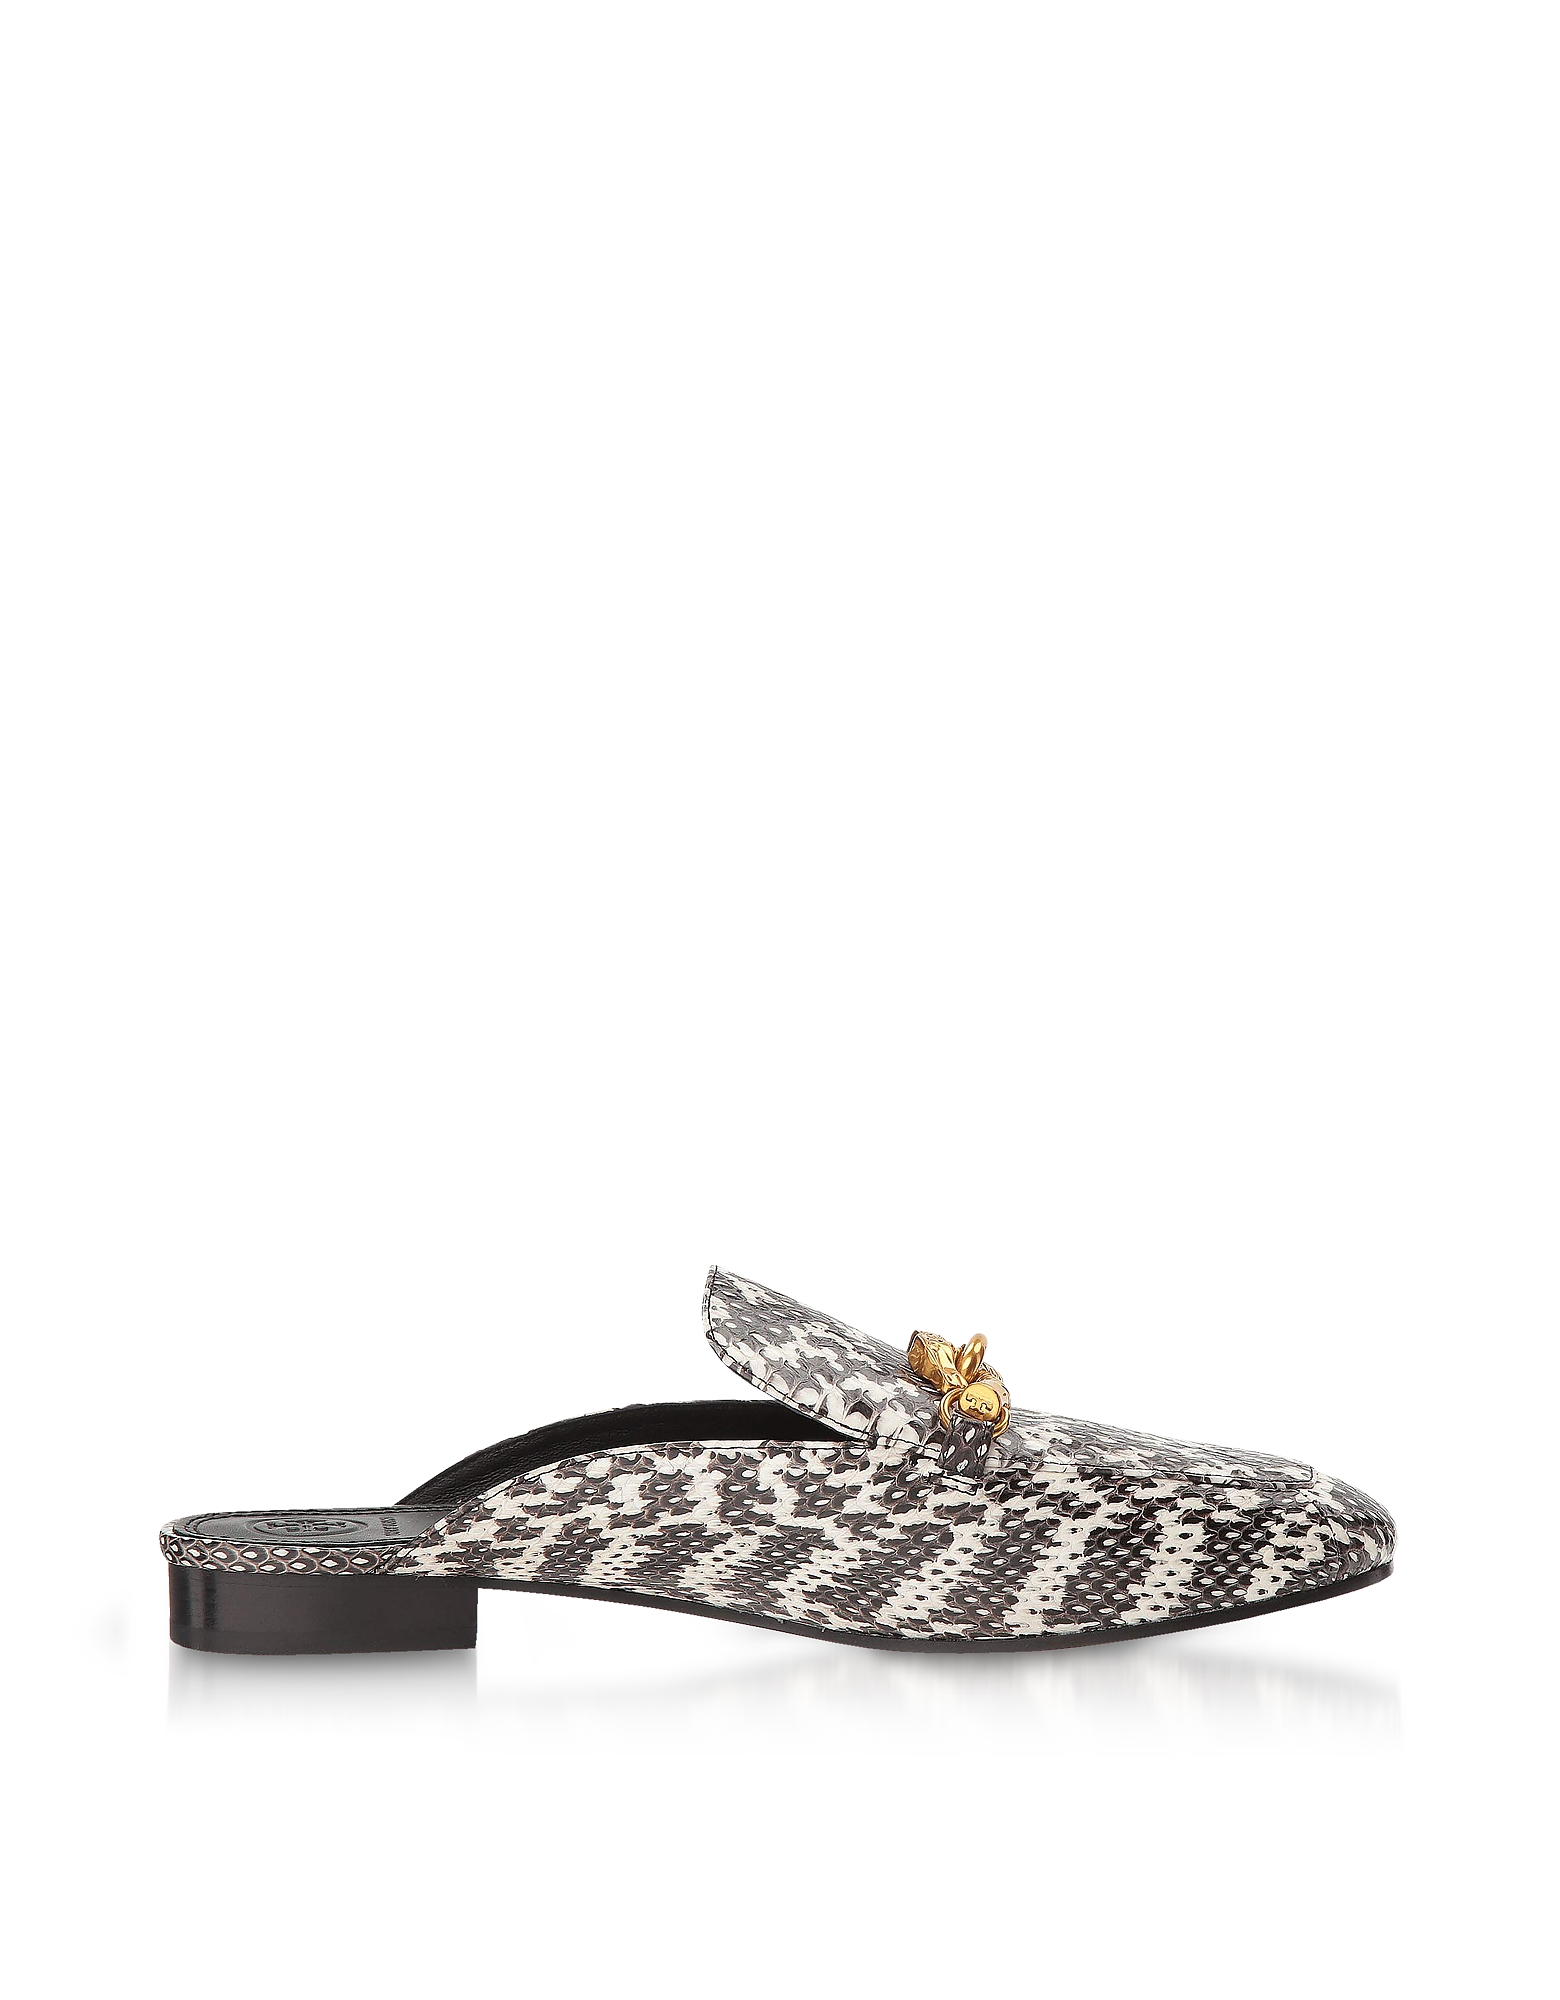 Tory Burch Shoes, Black and White Roccia Embossed Leather Jessa Backless Loafer